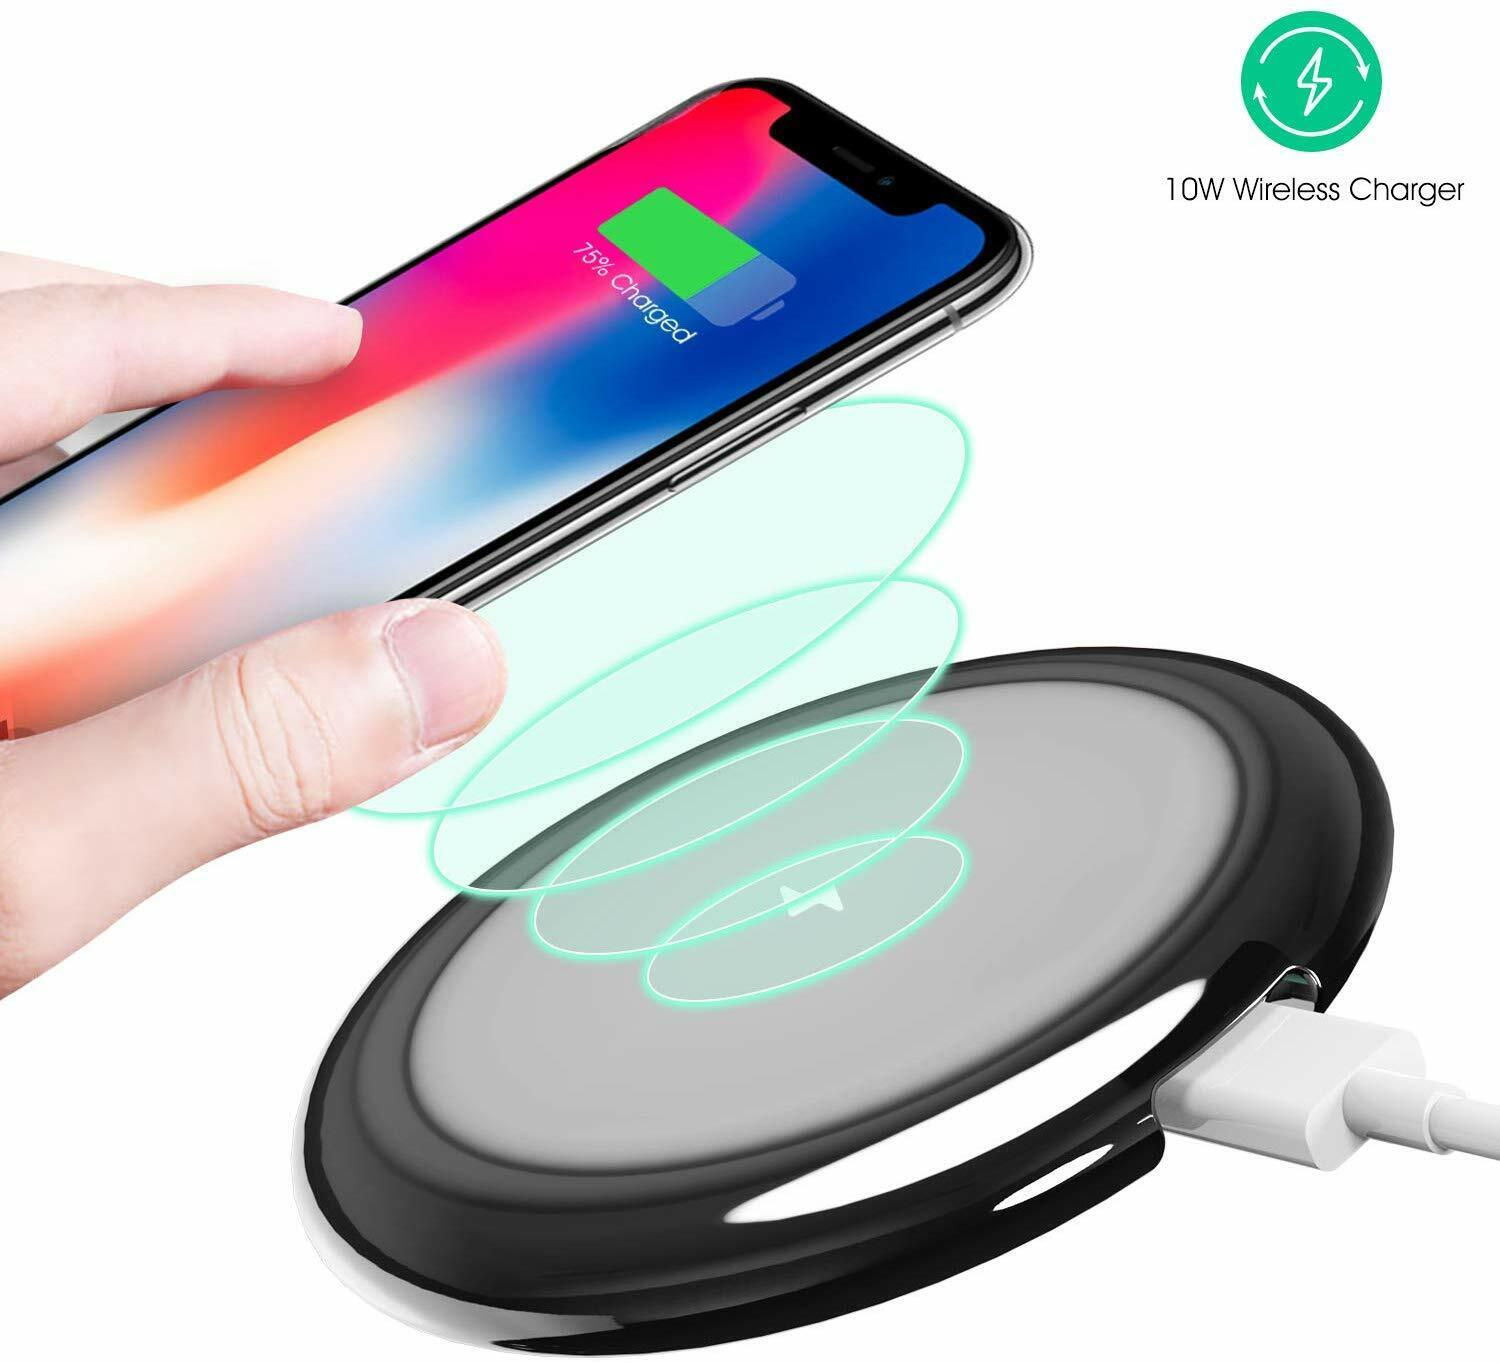 Fast Wireless Charging Pad 10W/7.5W Qi Pad IP54 Waterproof iPhone Samsung NEW Cell Phone Accessories